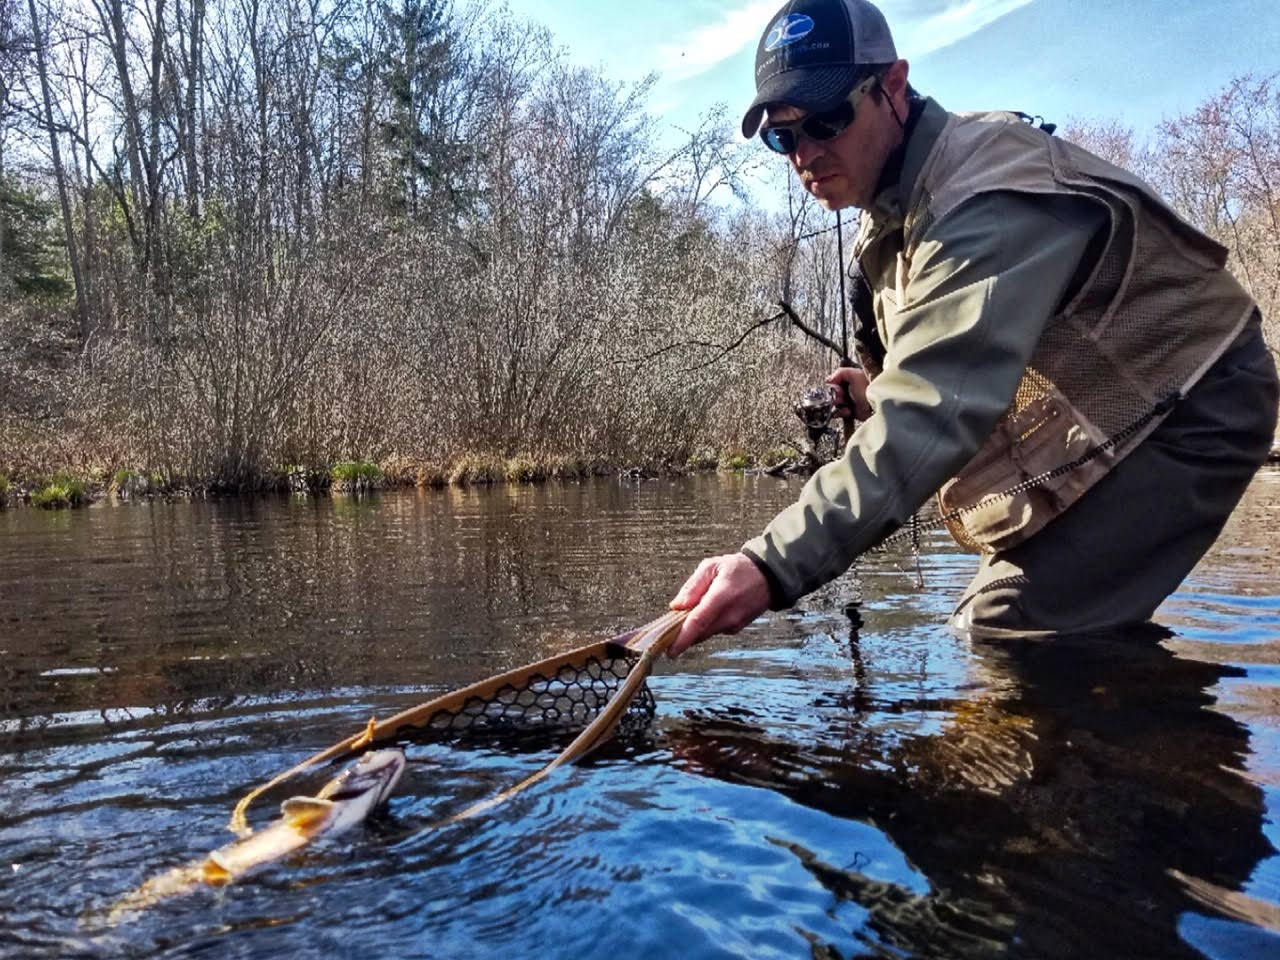 Angler using a net to pull in a fish.